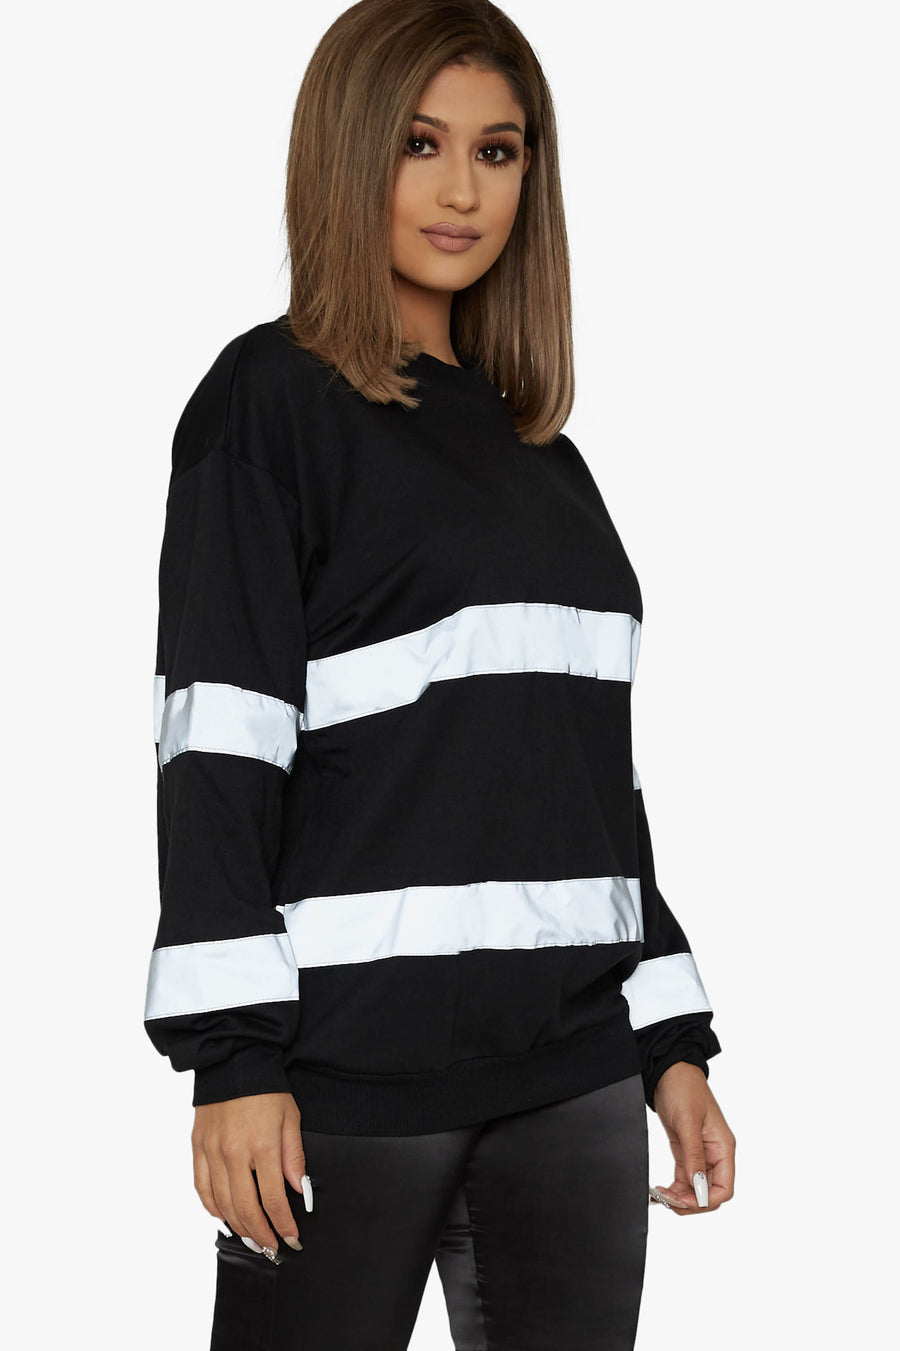 Not Your Valet Reflective Oversized Sweatshirt